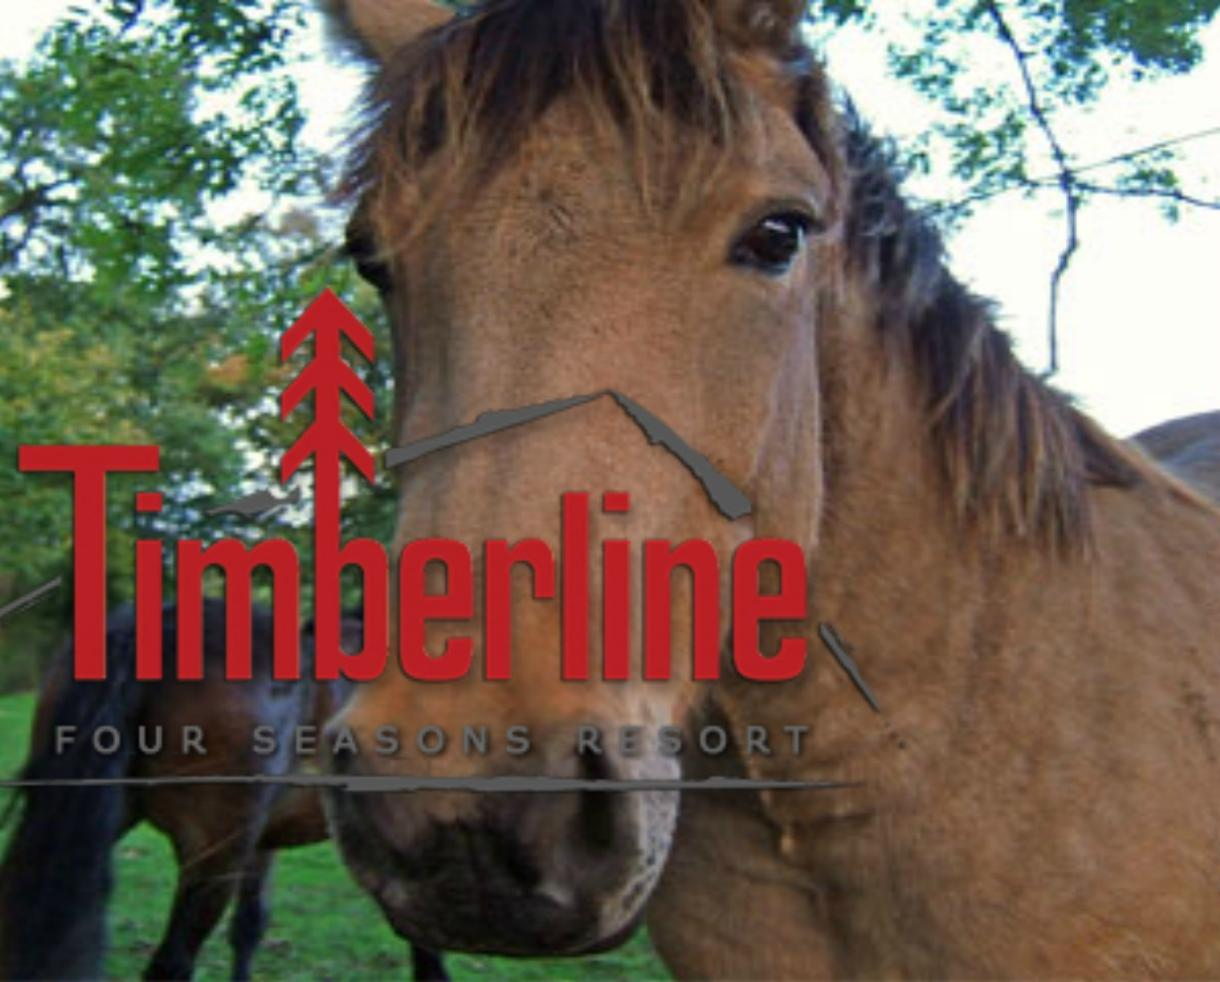 $259 for 2-Night Family Getaway + 4 Horseback Trail Rides at Timberline Four Seasons Resort in WV - VALID ANY DAY ALL SUMMER! (35% Off)